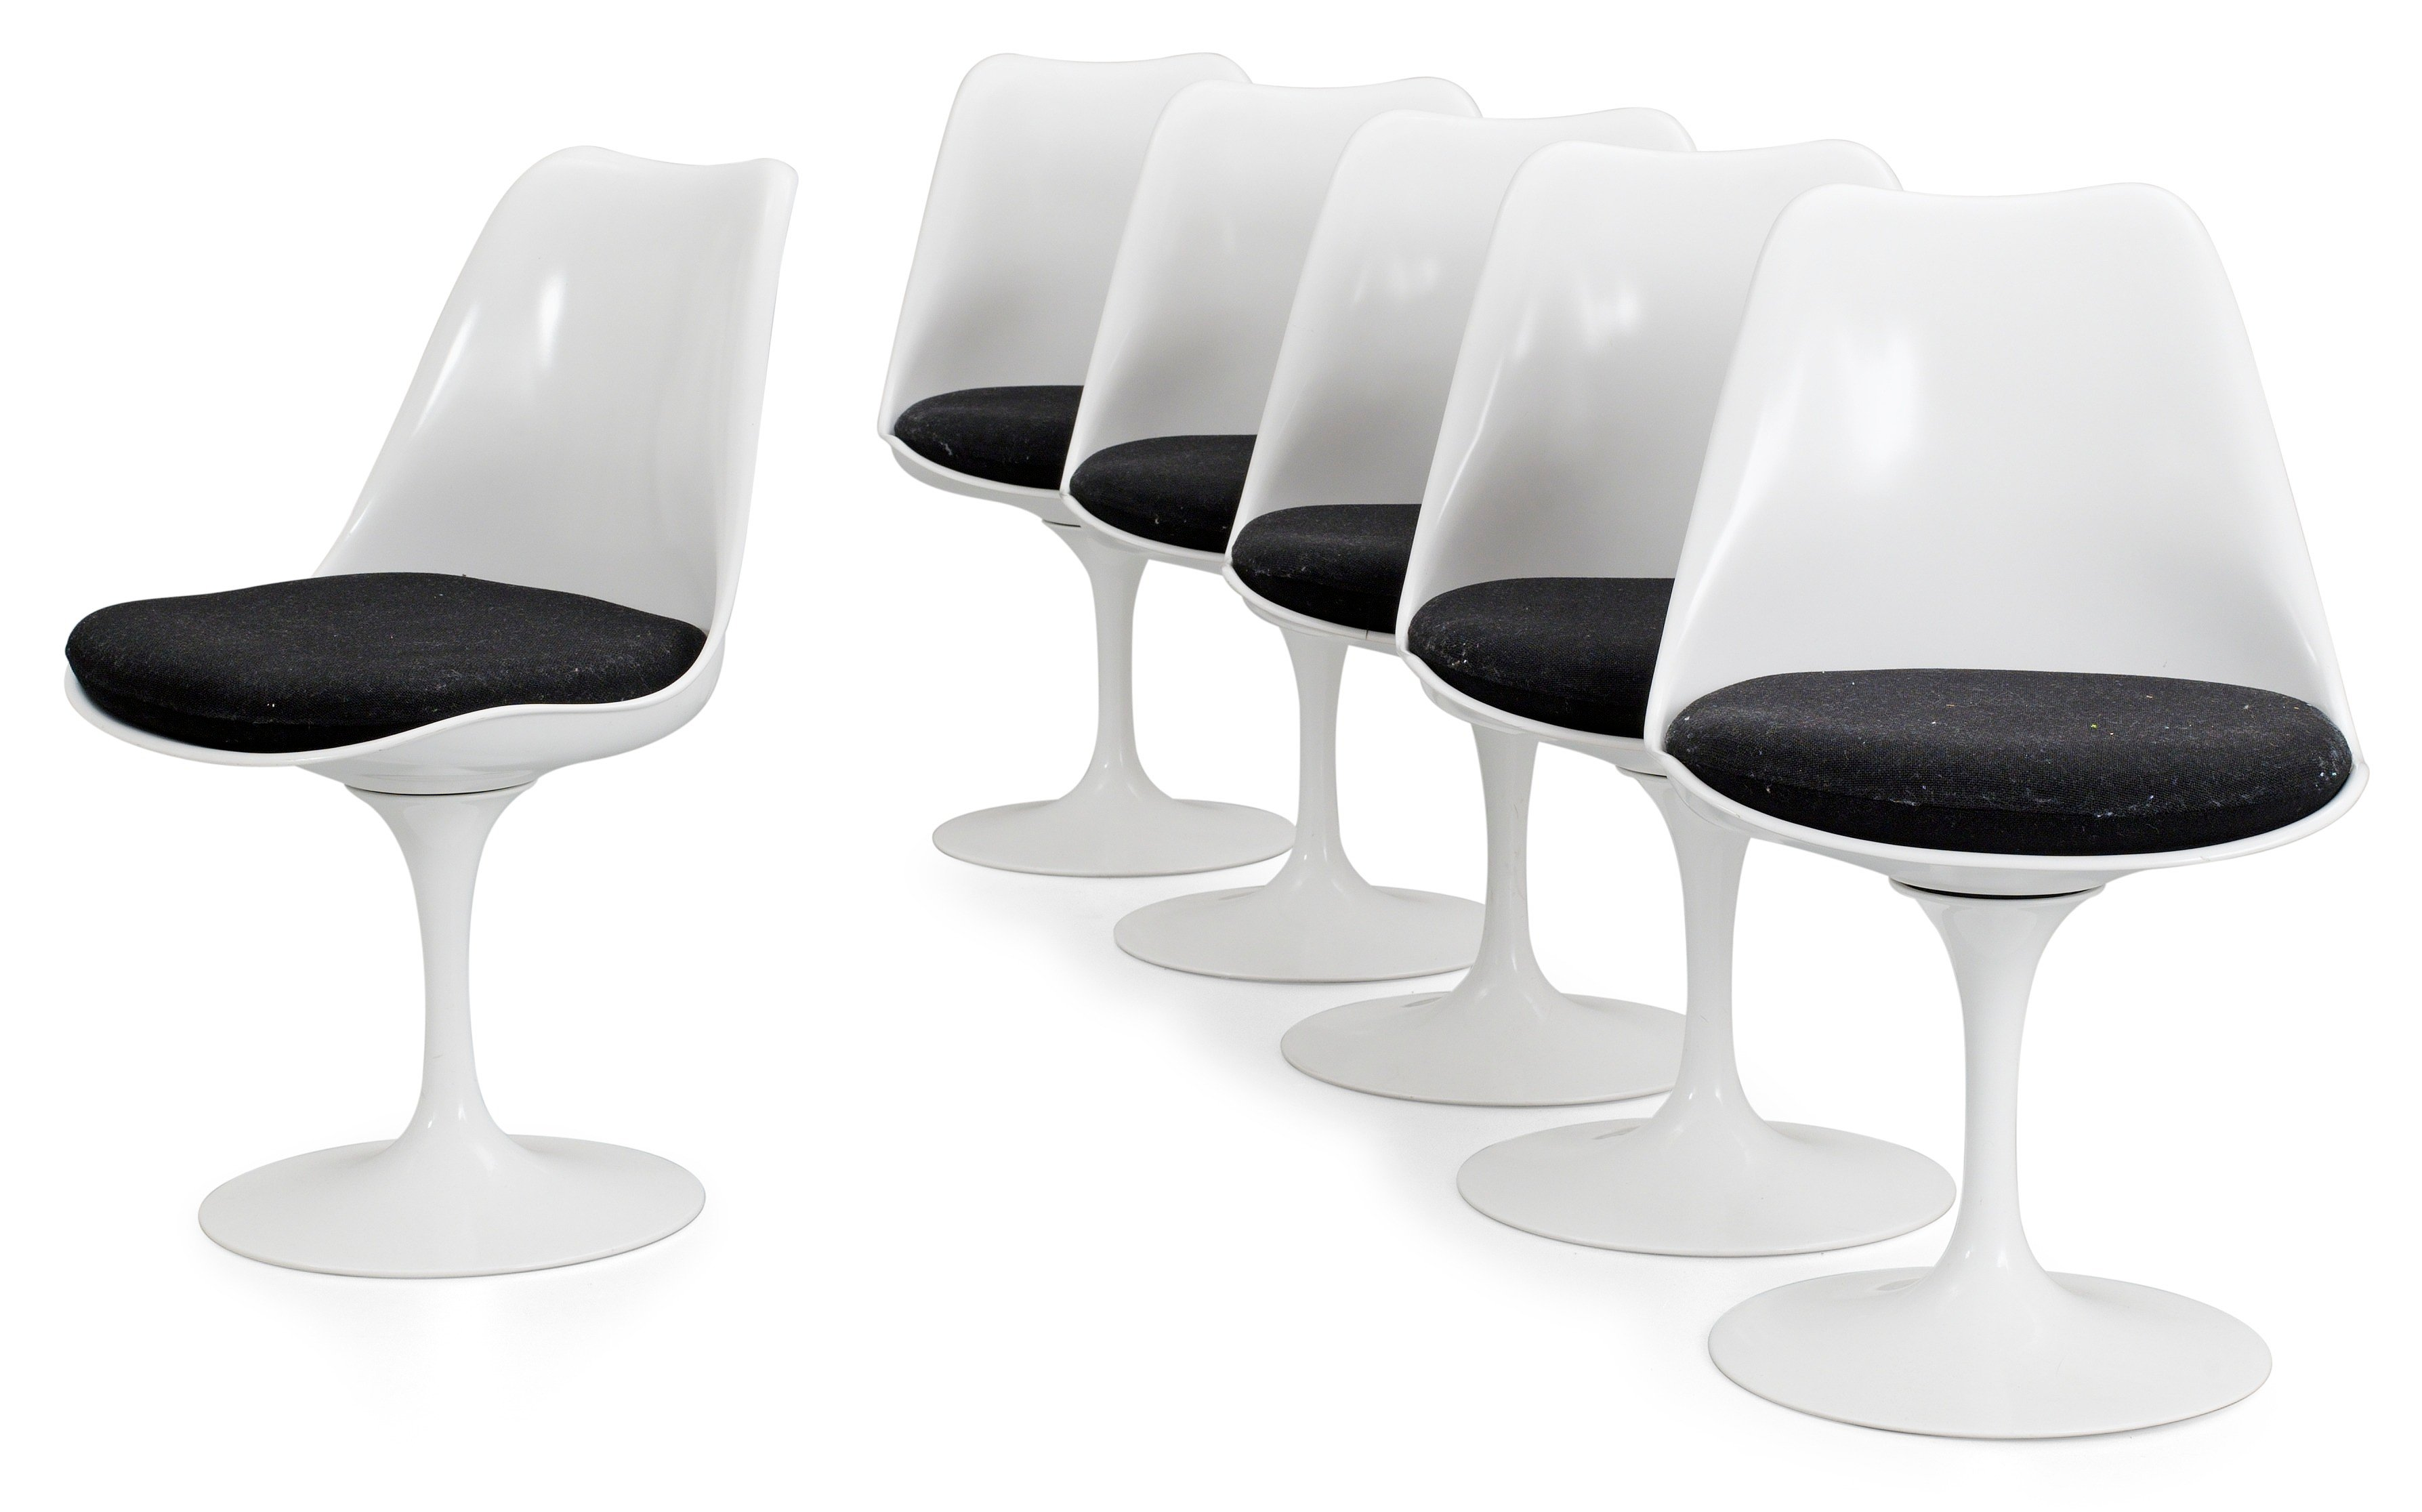 Knoll Saarinen A Set Of Six Eero Saarinen 39tulip 39 Chairs By Knoll